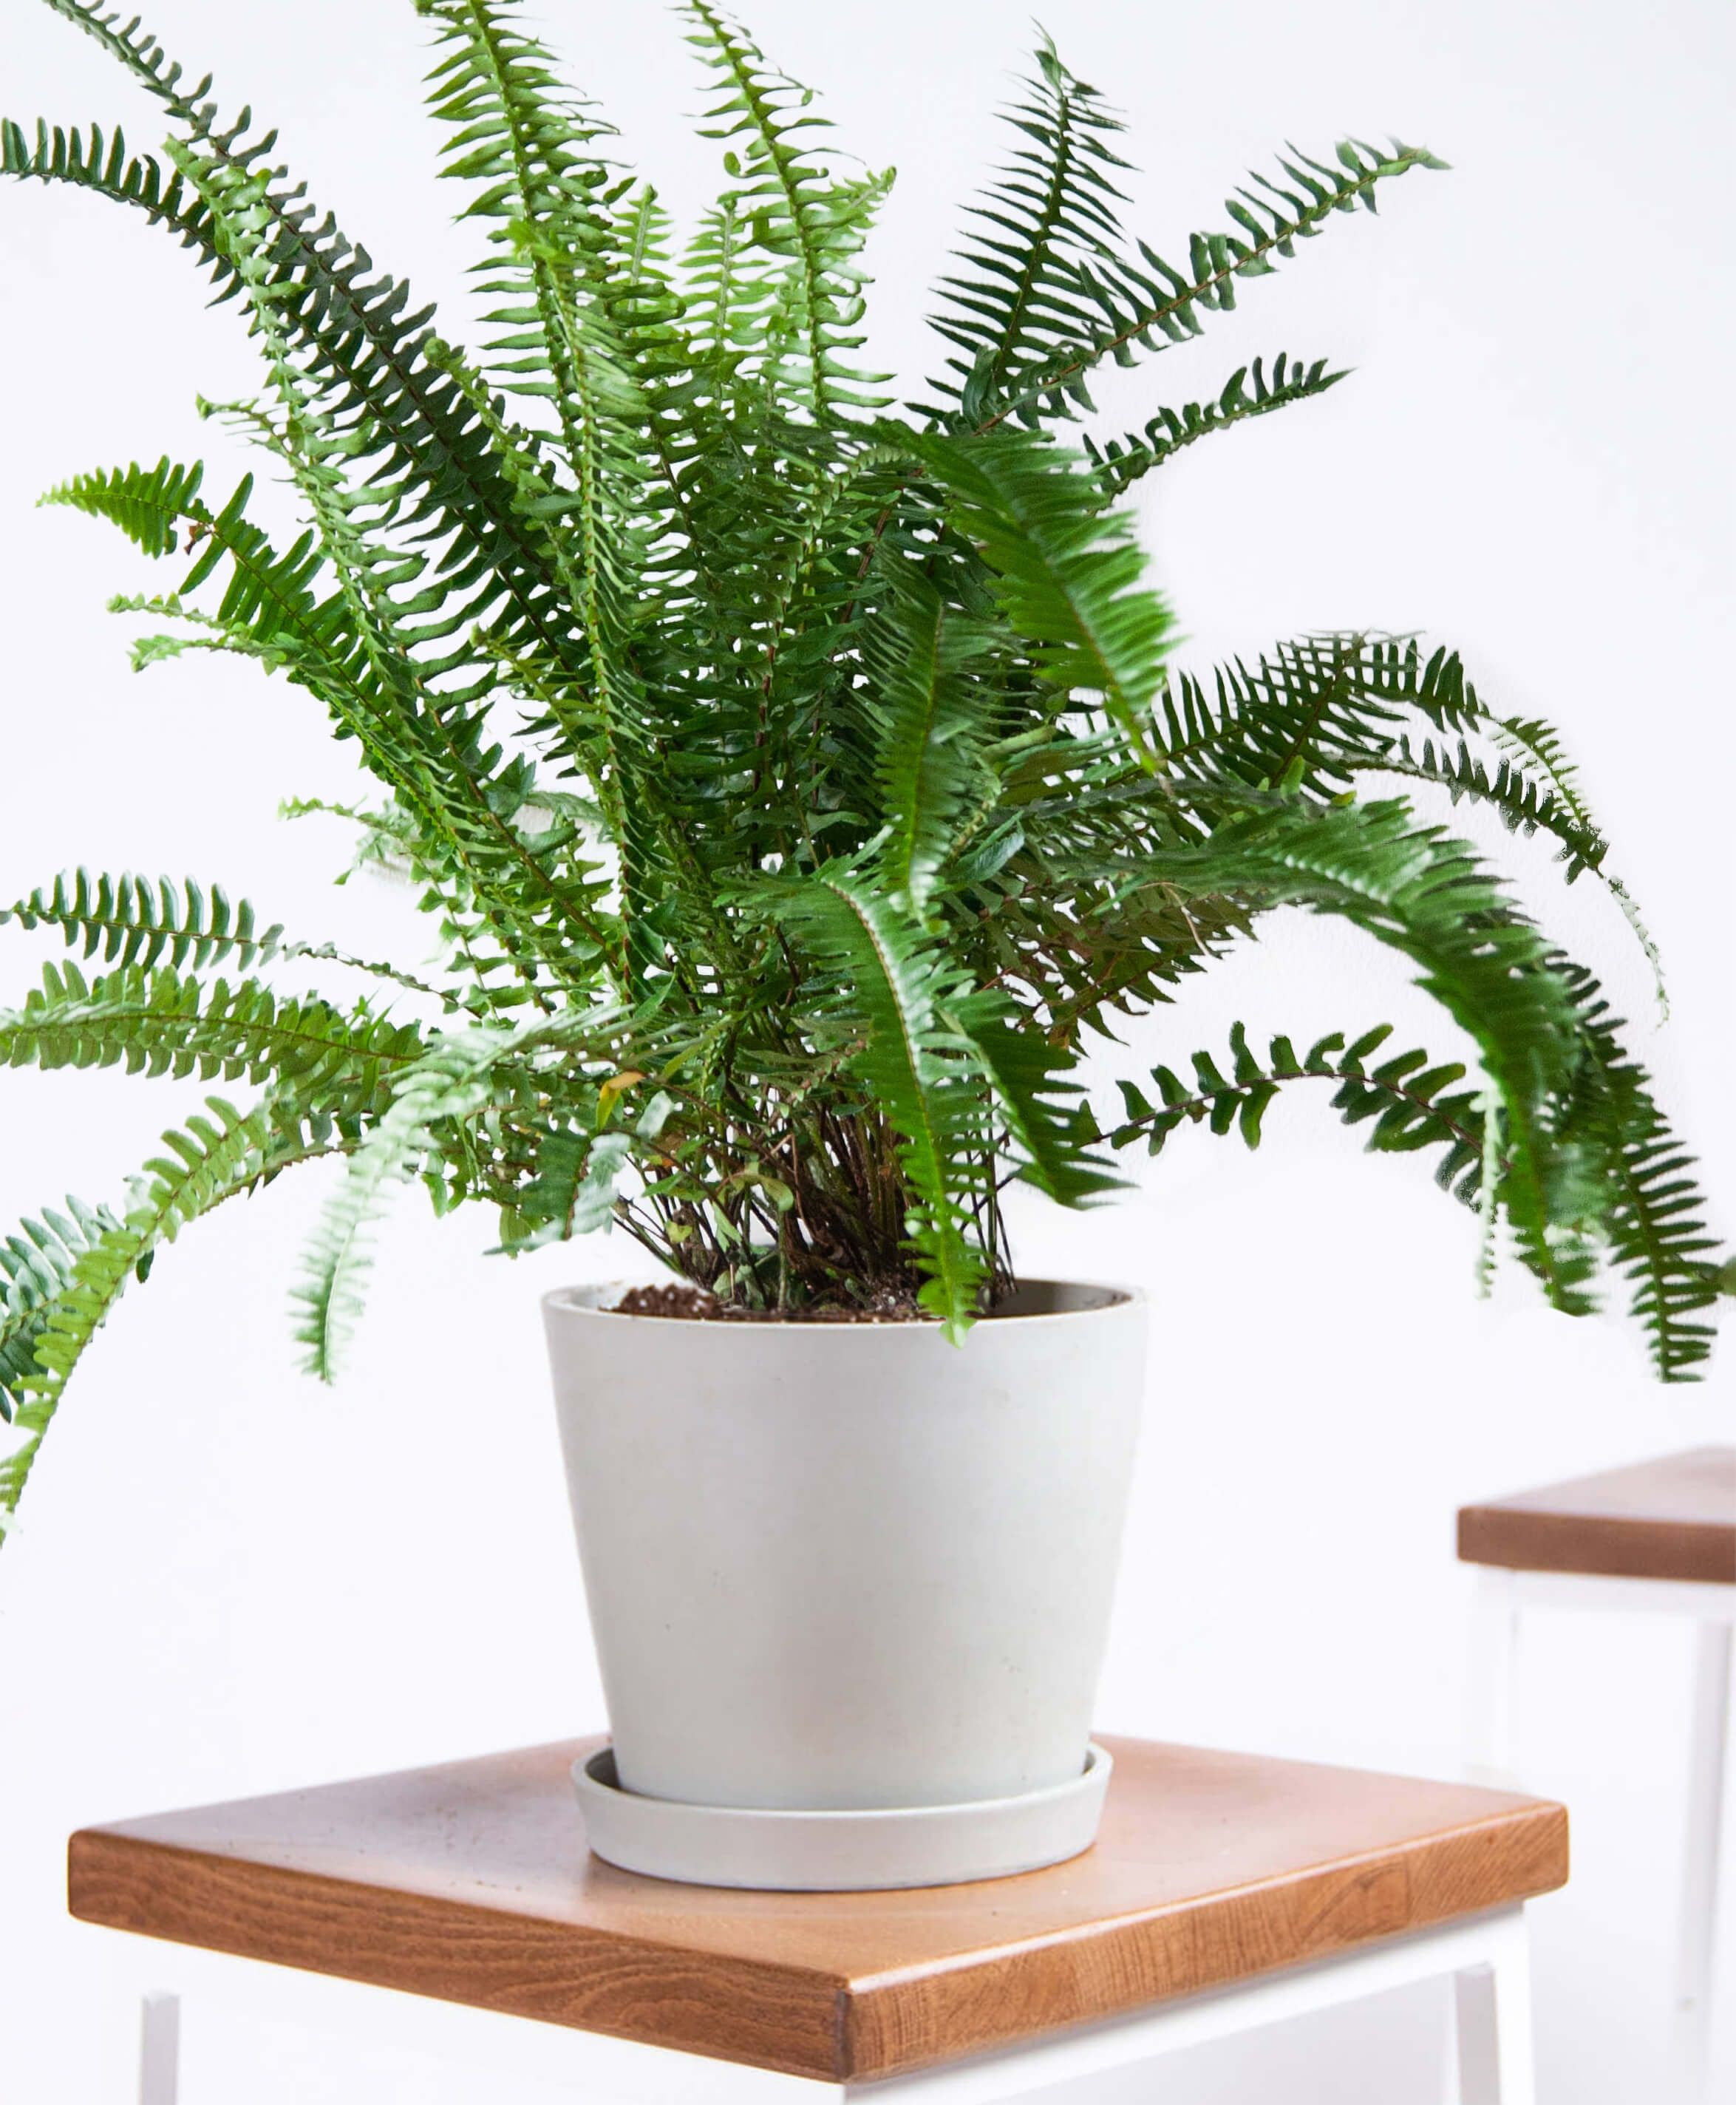 30 Houseplants That Can Survive Low Light Best Indoor Low Light Plants